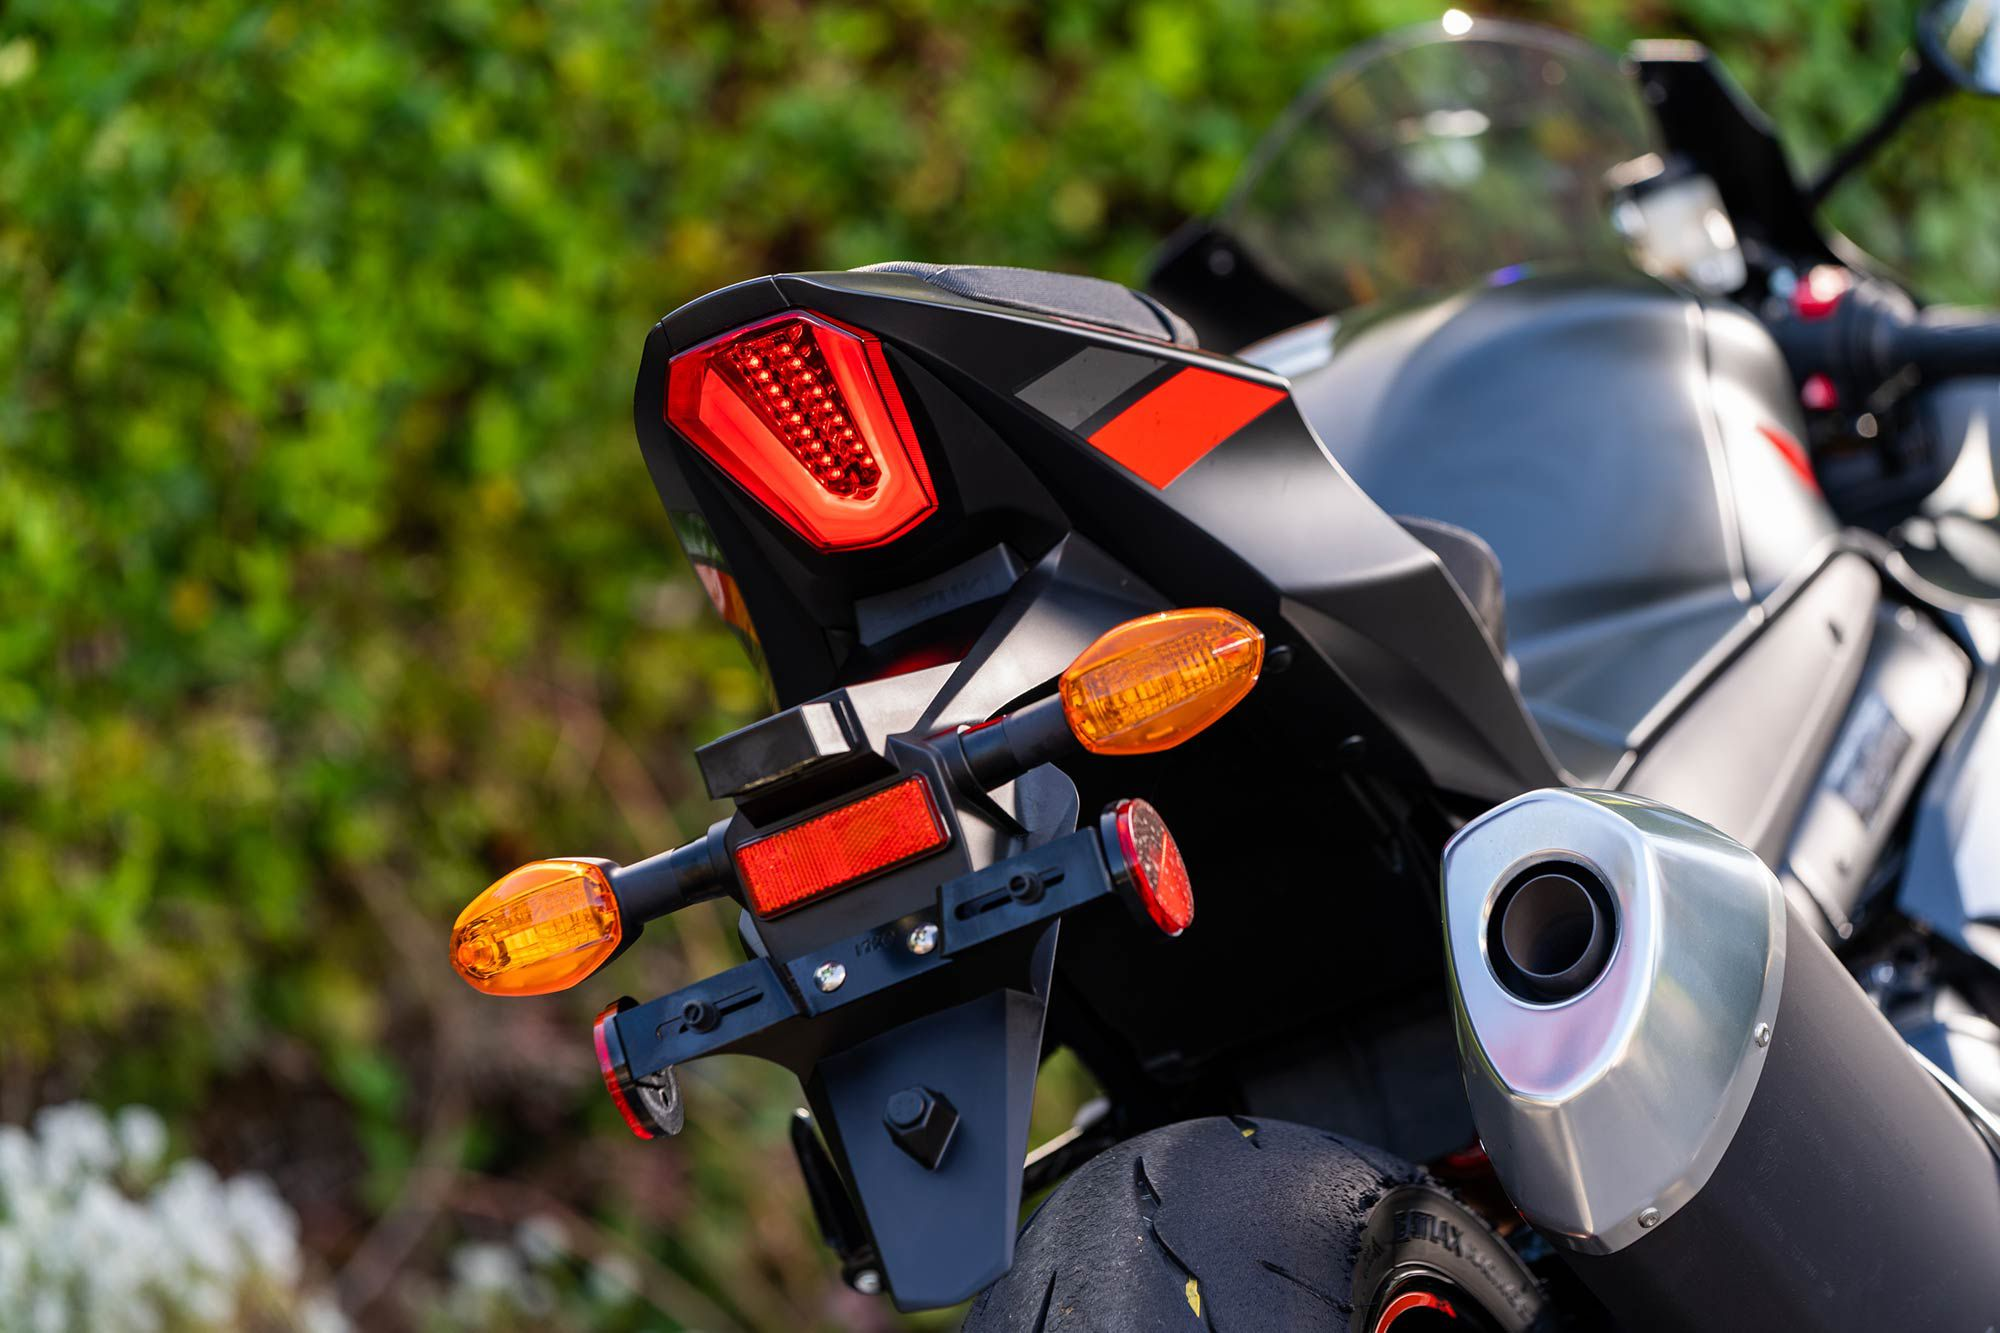 Its LED tail light is bright and helps the Suzuki rider stand out after dark. One gripe: we wish the turn signals were LED, too.